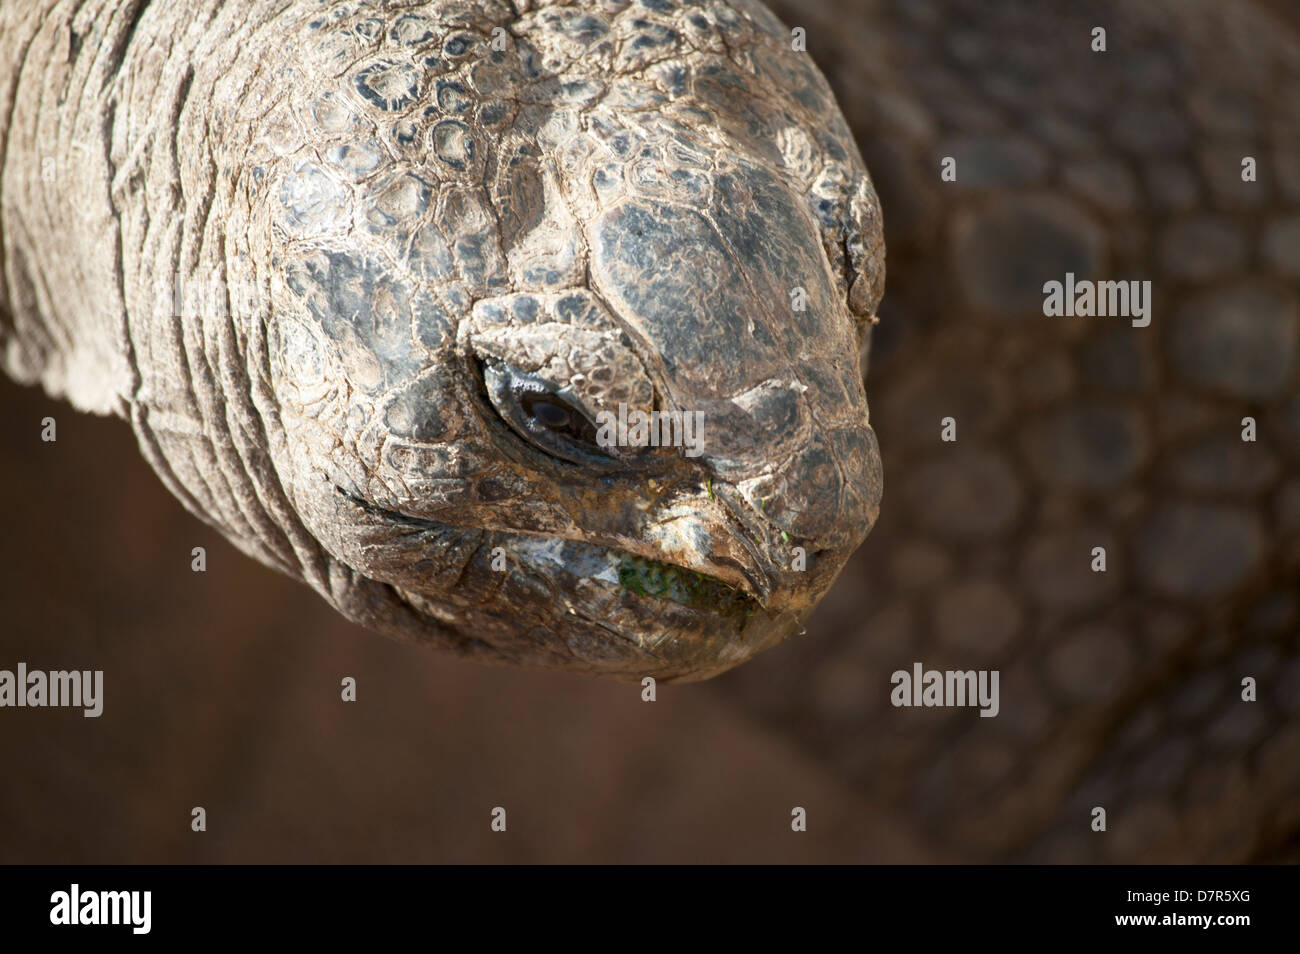 Close up head shot of a Giant tortoise  Geochelone gigantea - Stock Image